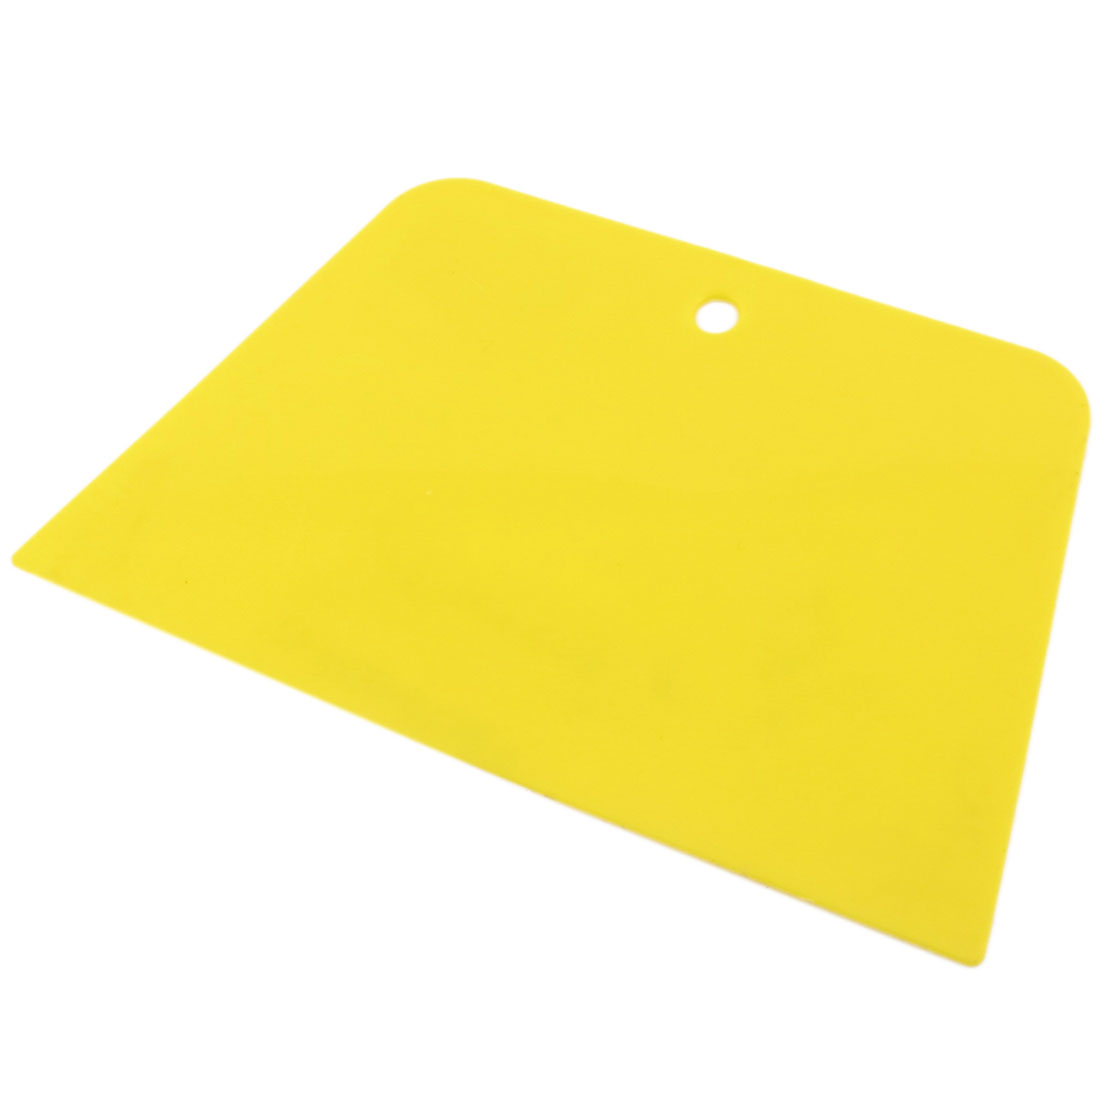 "4.3"" Wide Trapezoid Plastic Varnish Paint Cake Scraper Putty Spreader Yellow"